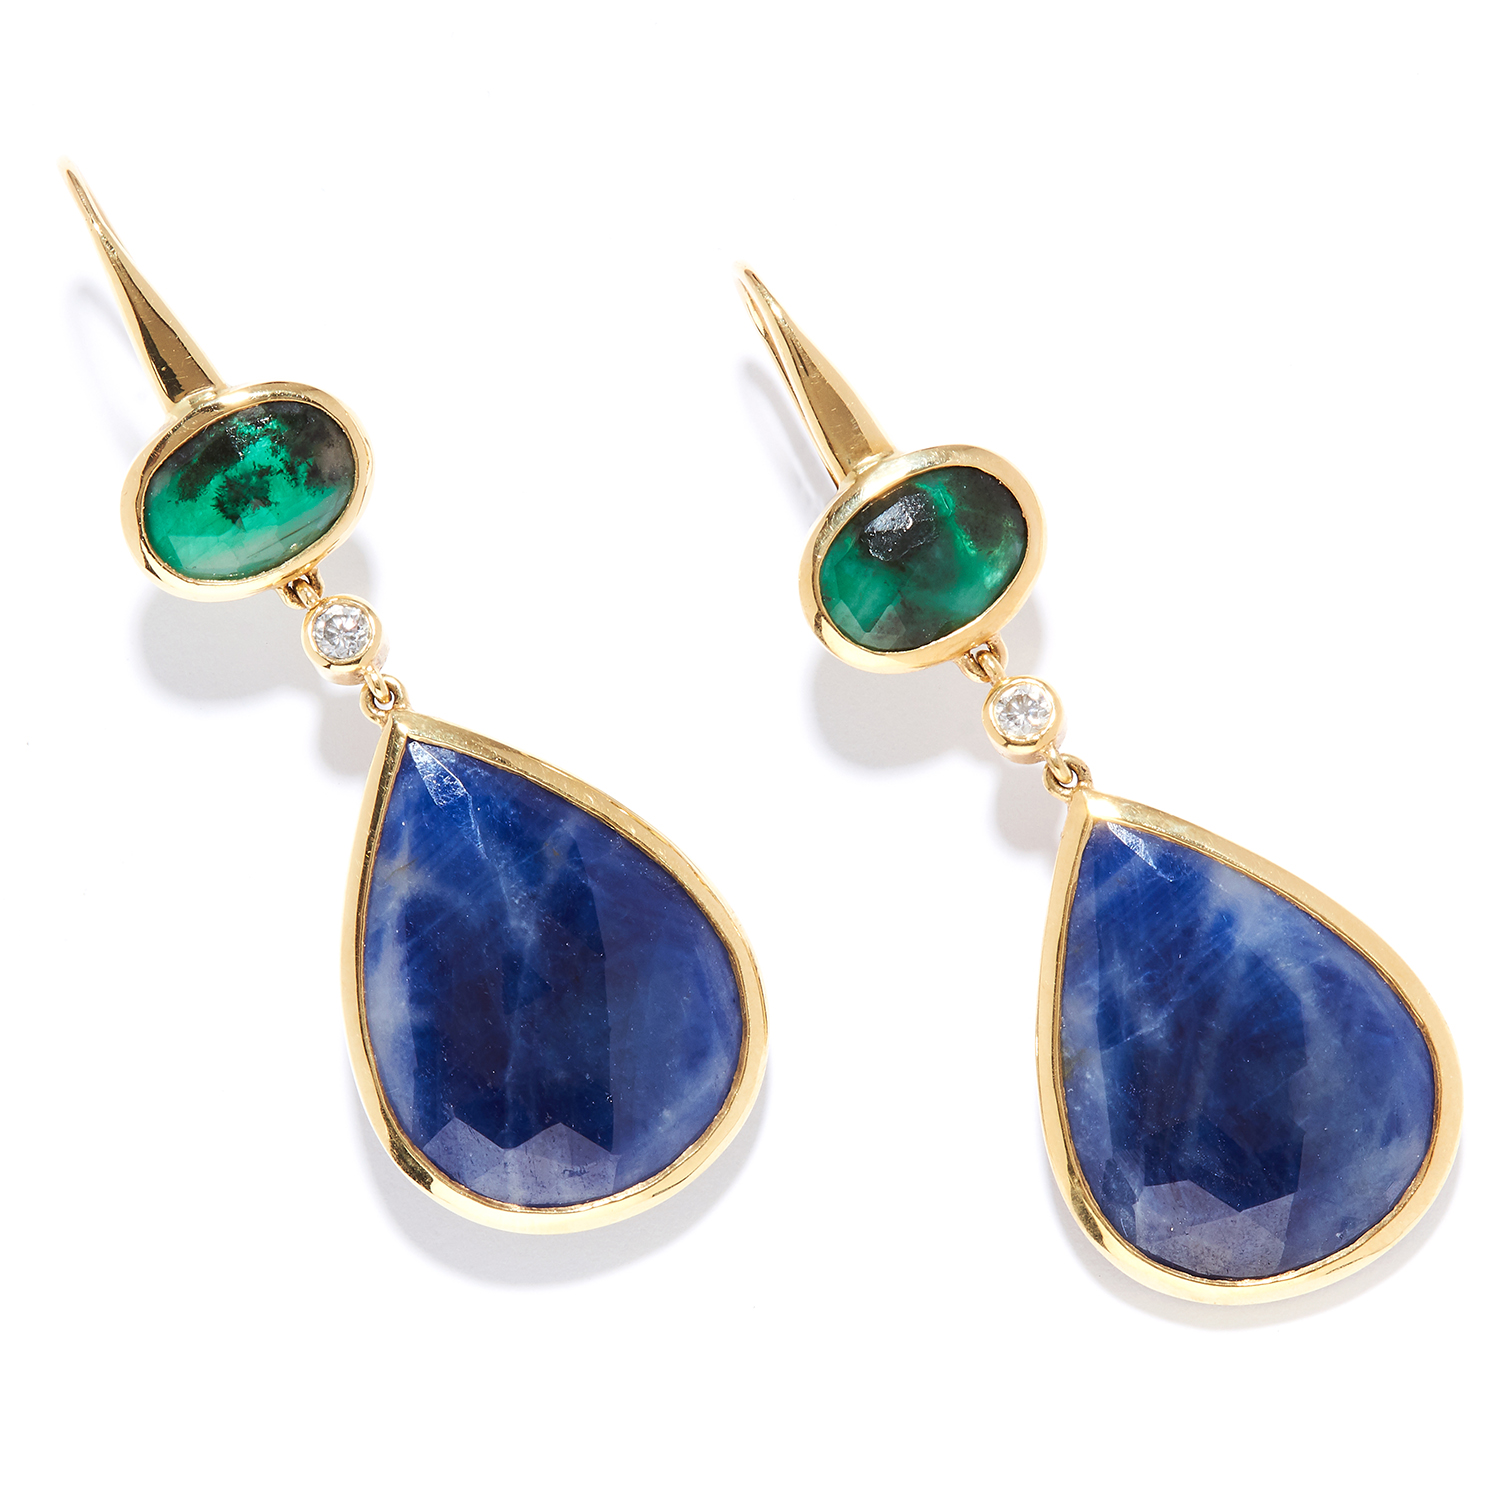 SAPPHIRE, EMERALD AND DIAMOND EARRINGS in 18ct yellow gold, articulated bodies set with rose cut